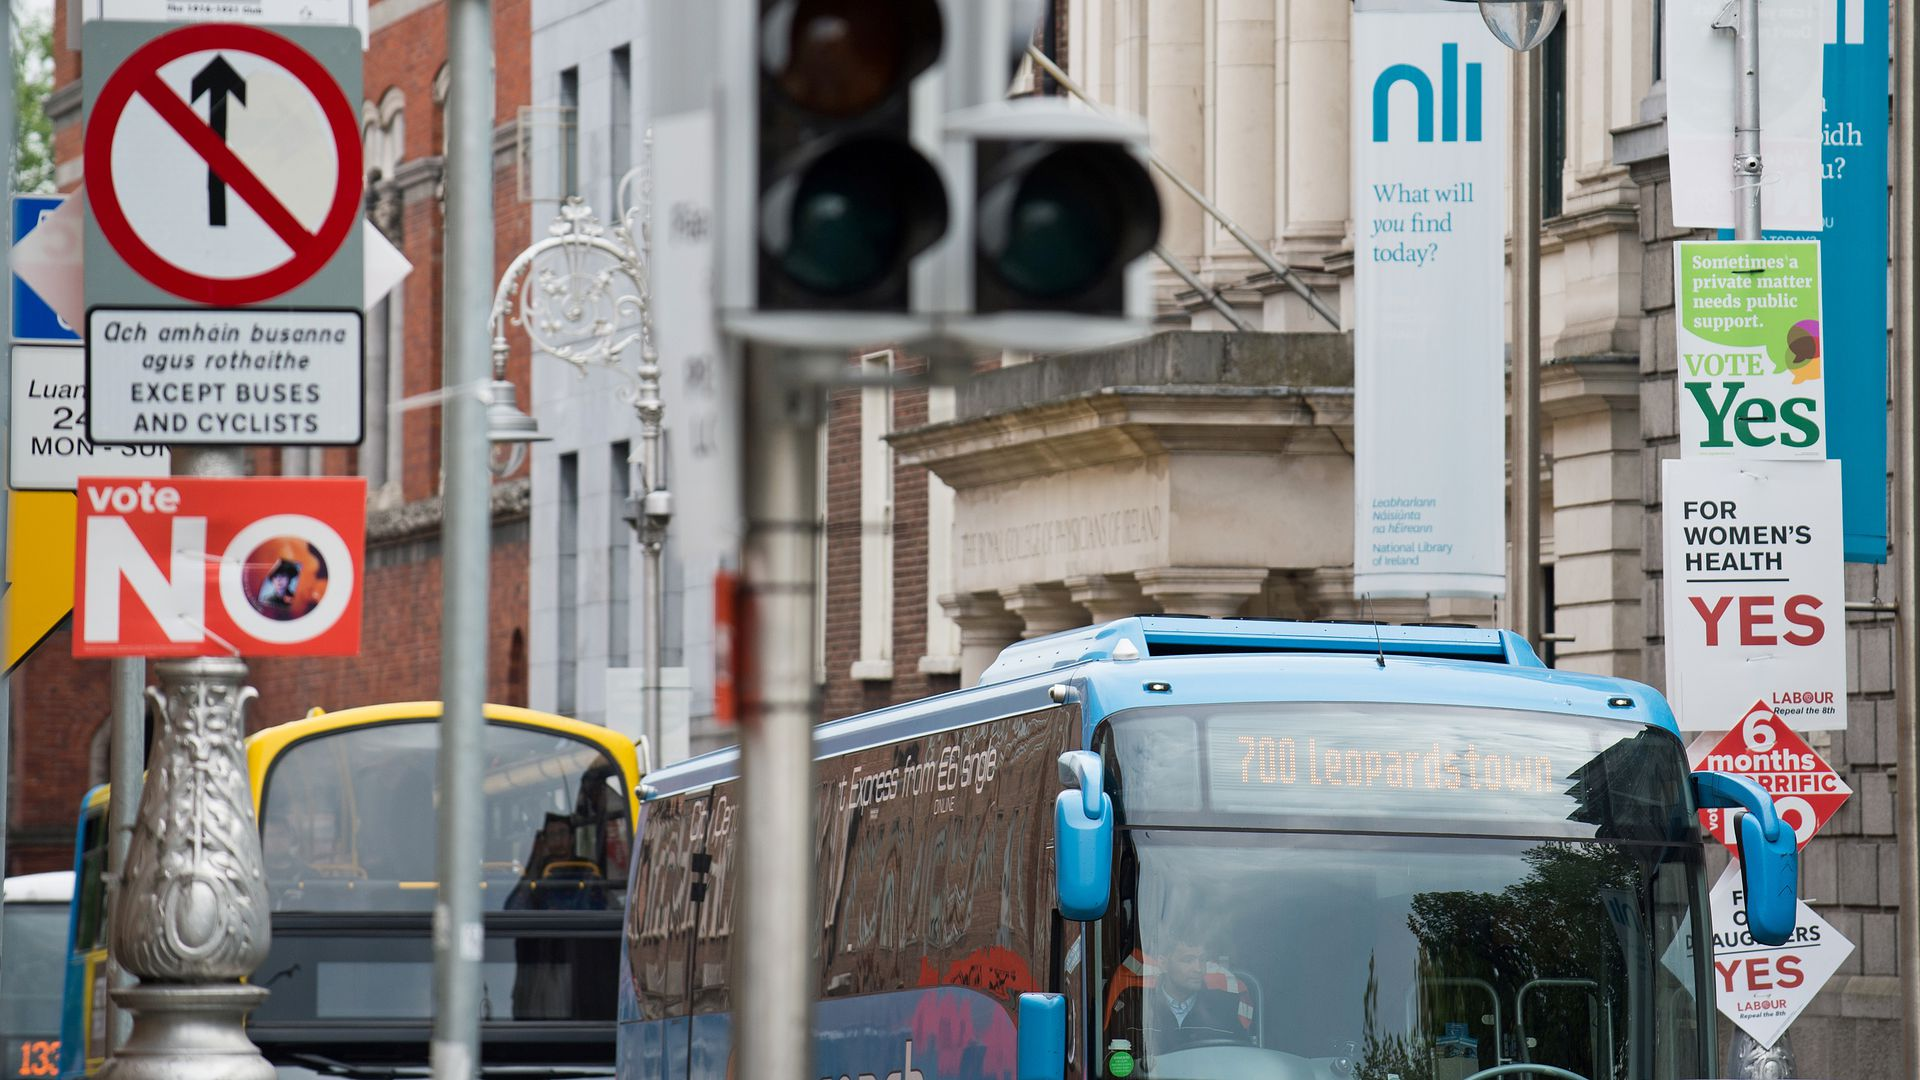 Buses pass posts covered in signs for anti- and pro-repeal of Ireland's abortion ban.